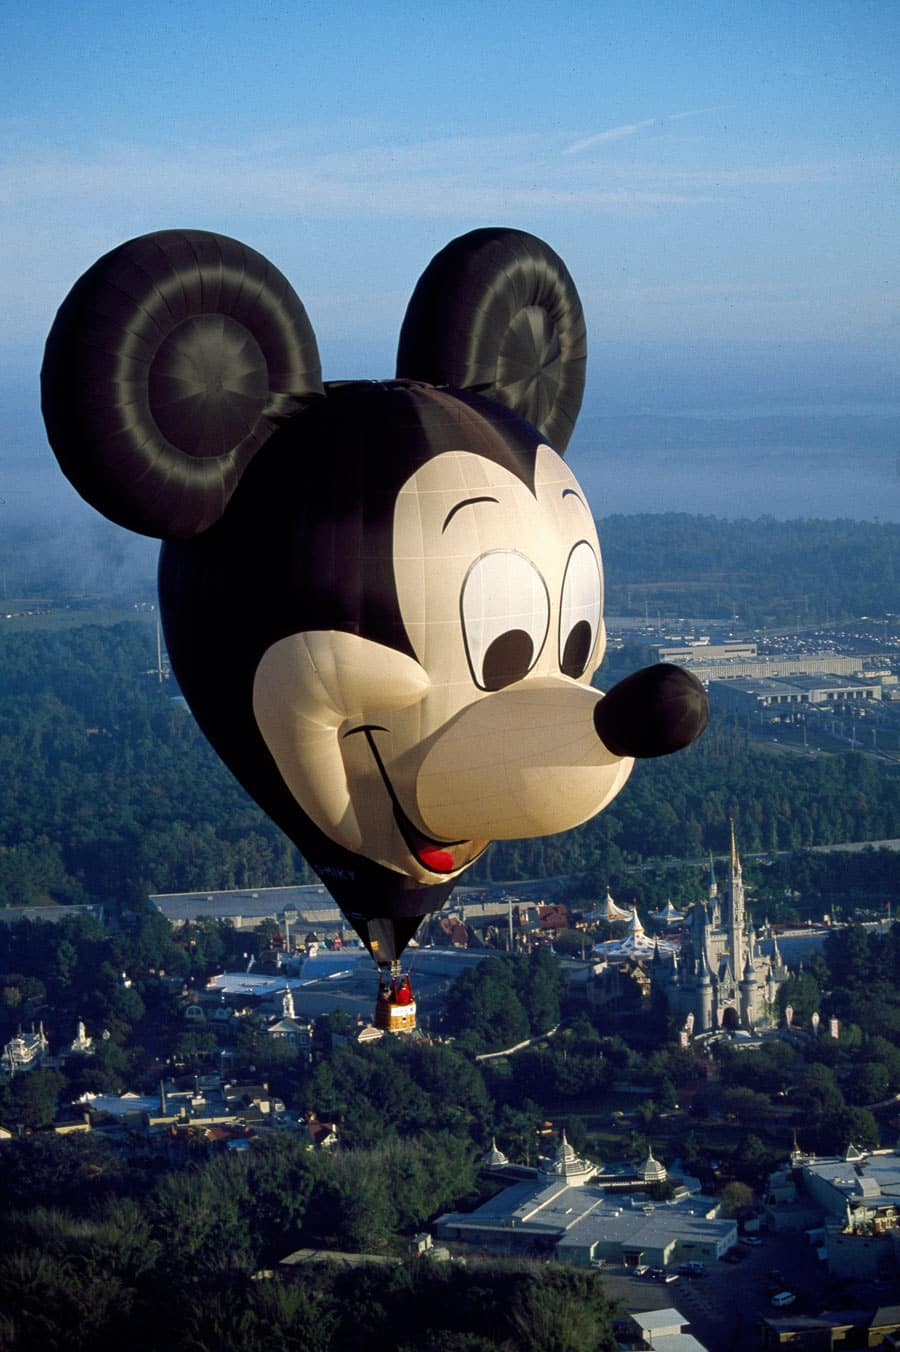 Mouse in a Hot Air Balloon